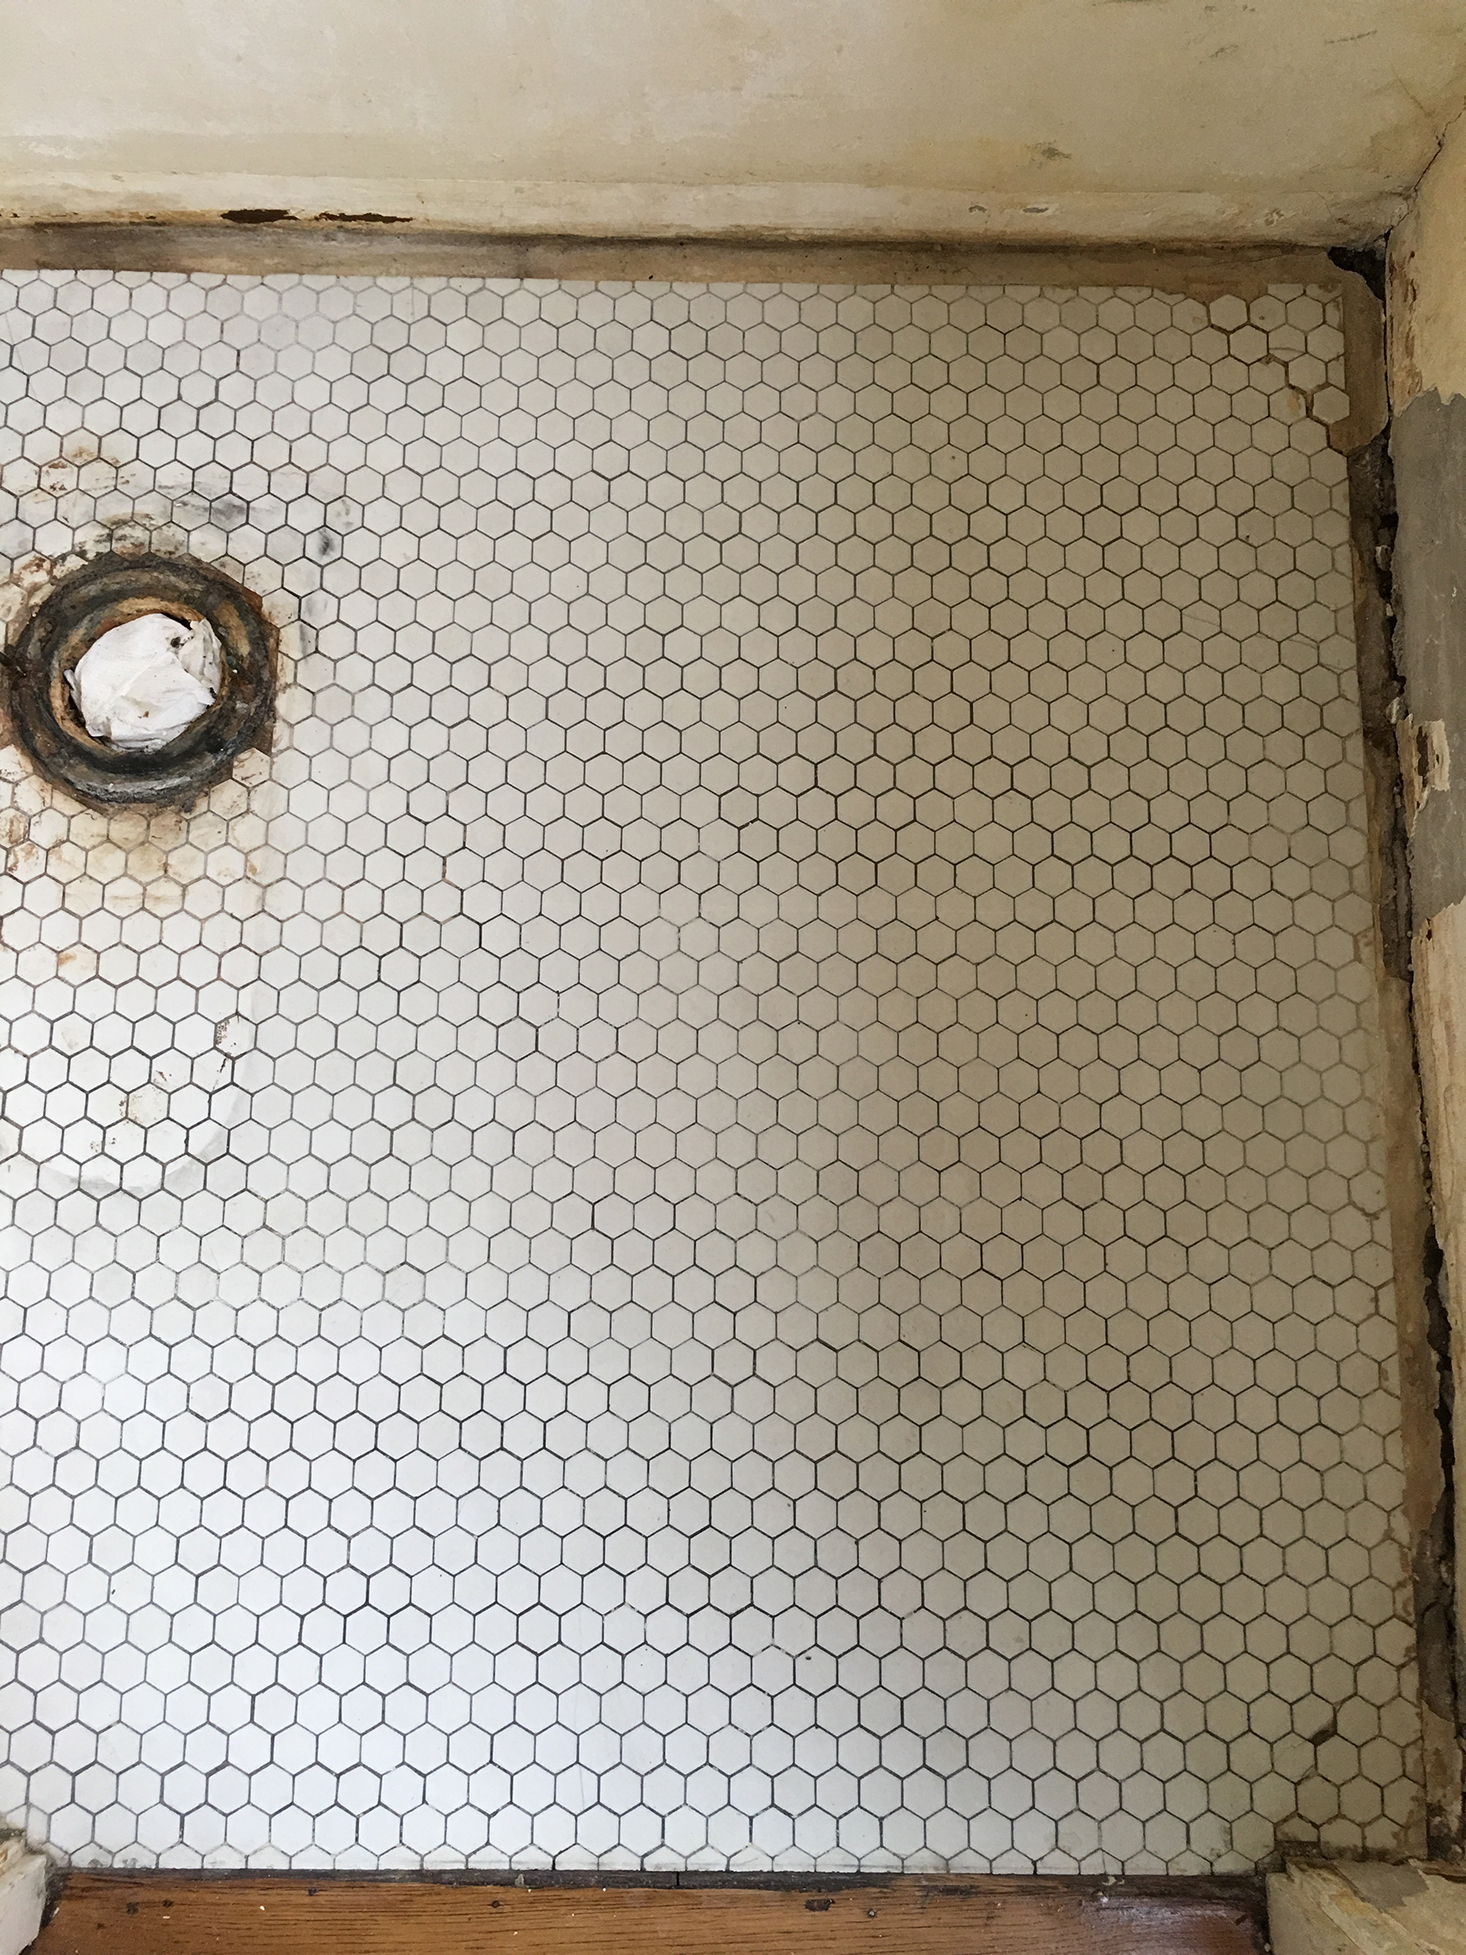 Removing Adhesive from Old Tile | The Sweet Beast Blog